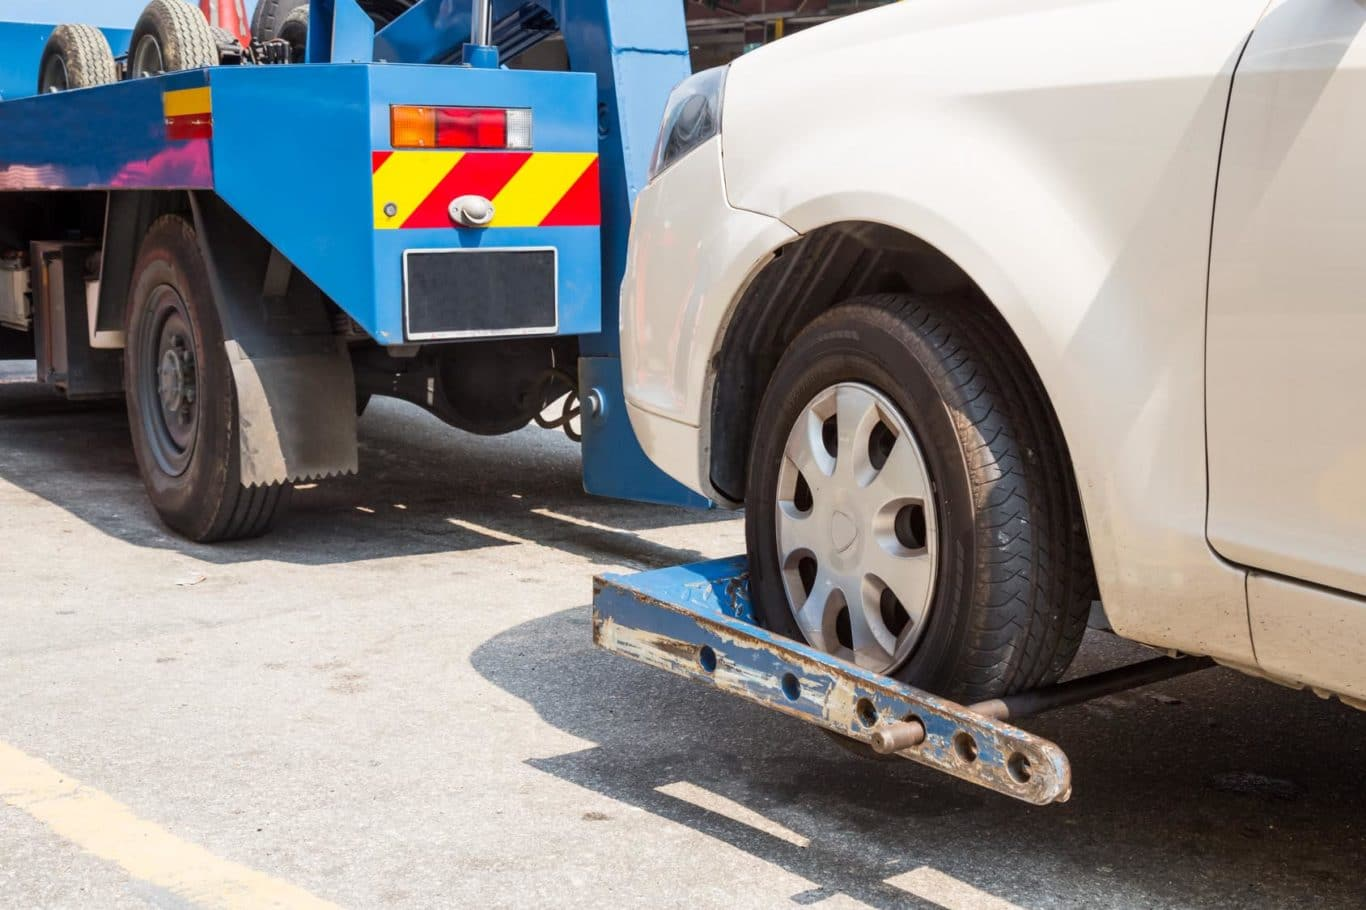 Newbridge expert Car Recovery services